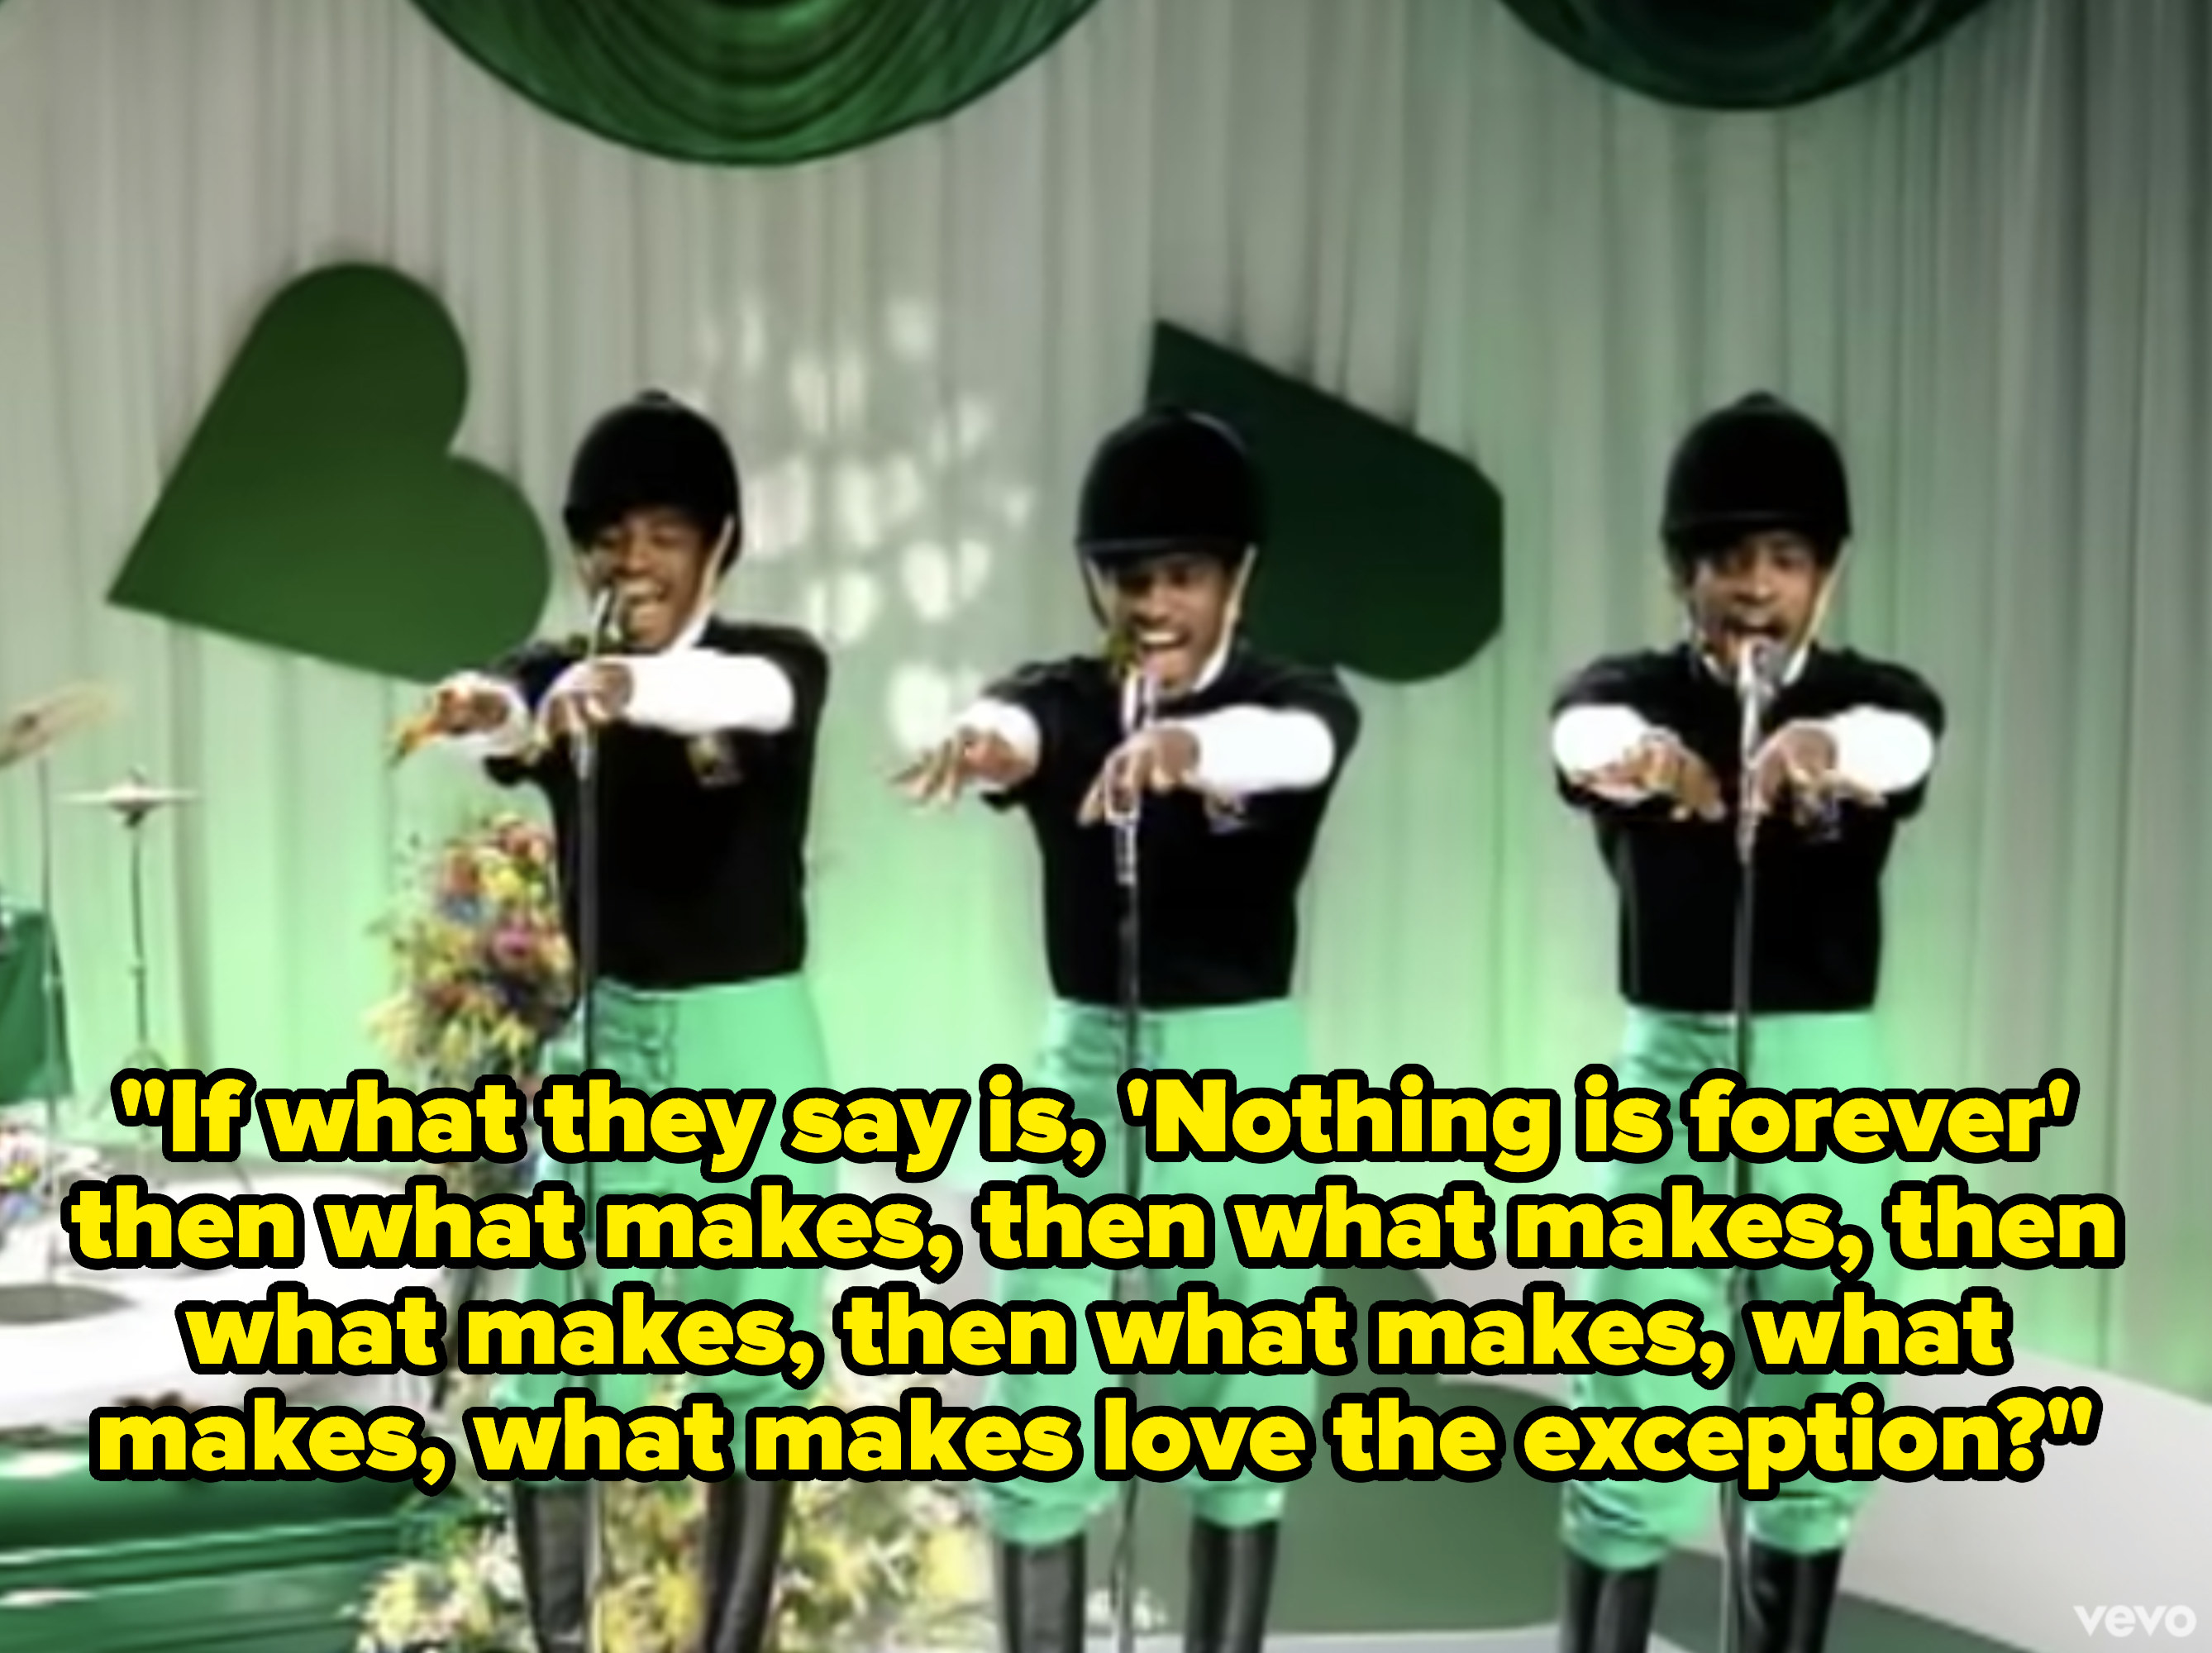 Andre 3000 x3 acting as background singers and dancers.